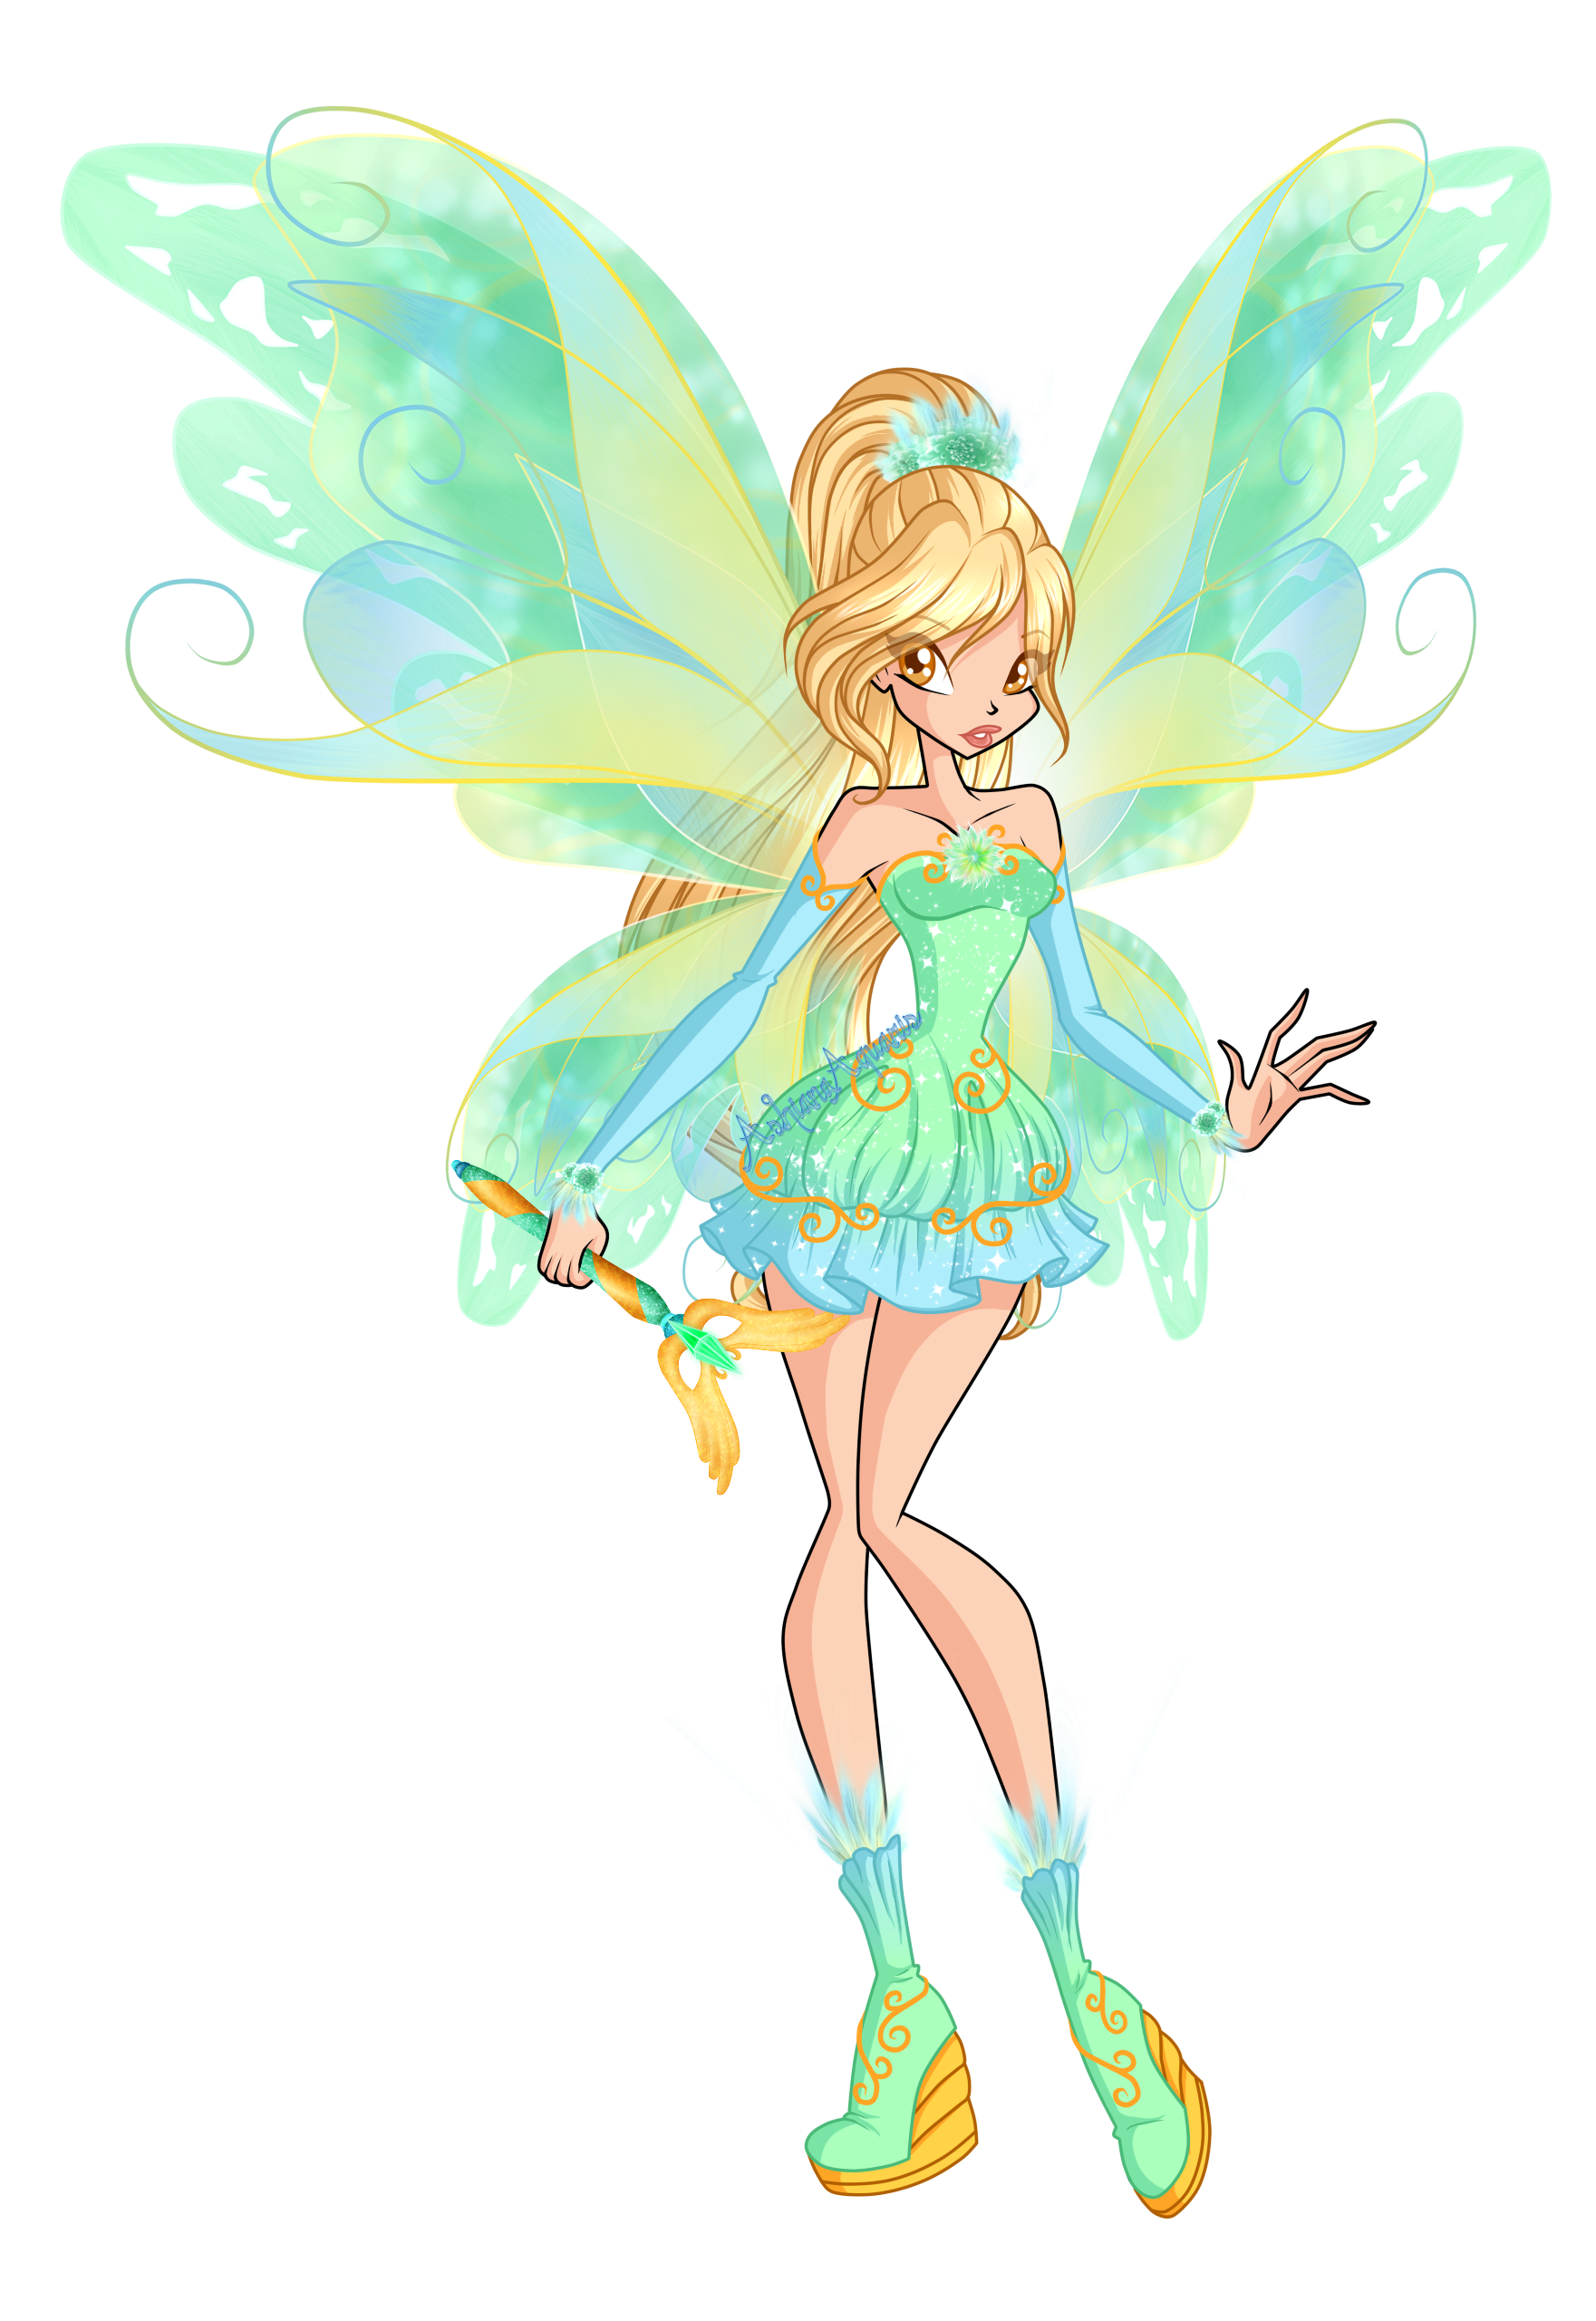 Winx 6: Daphne Mythix by Gerganafen on DeviantArt